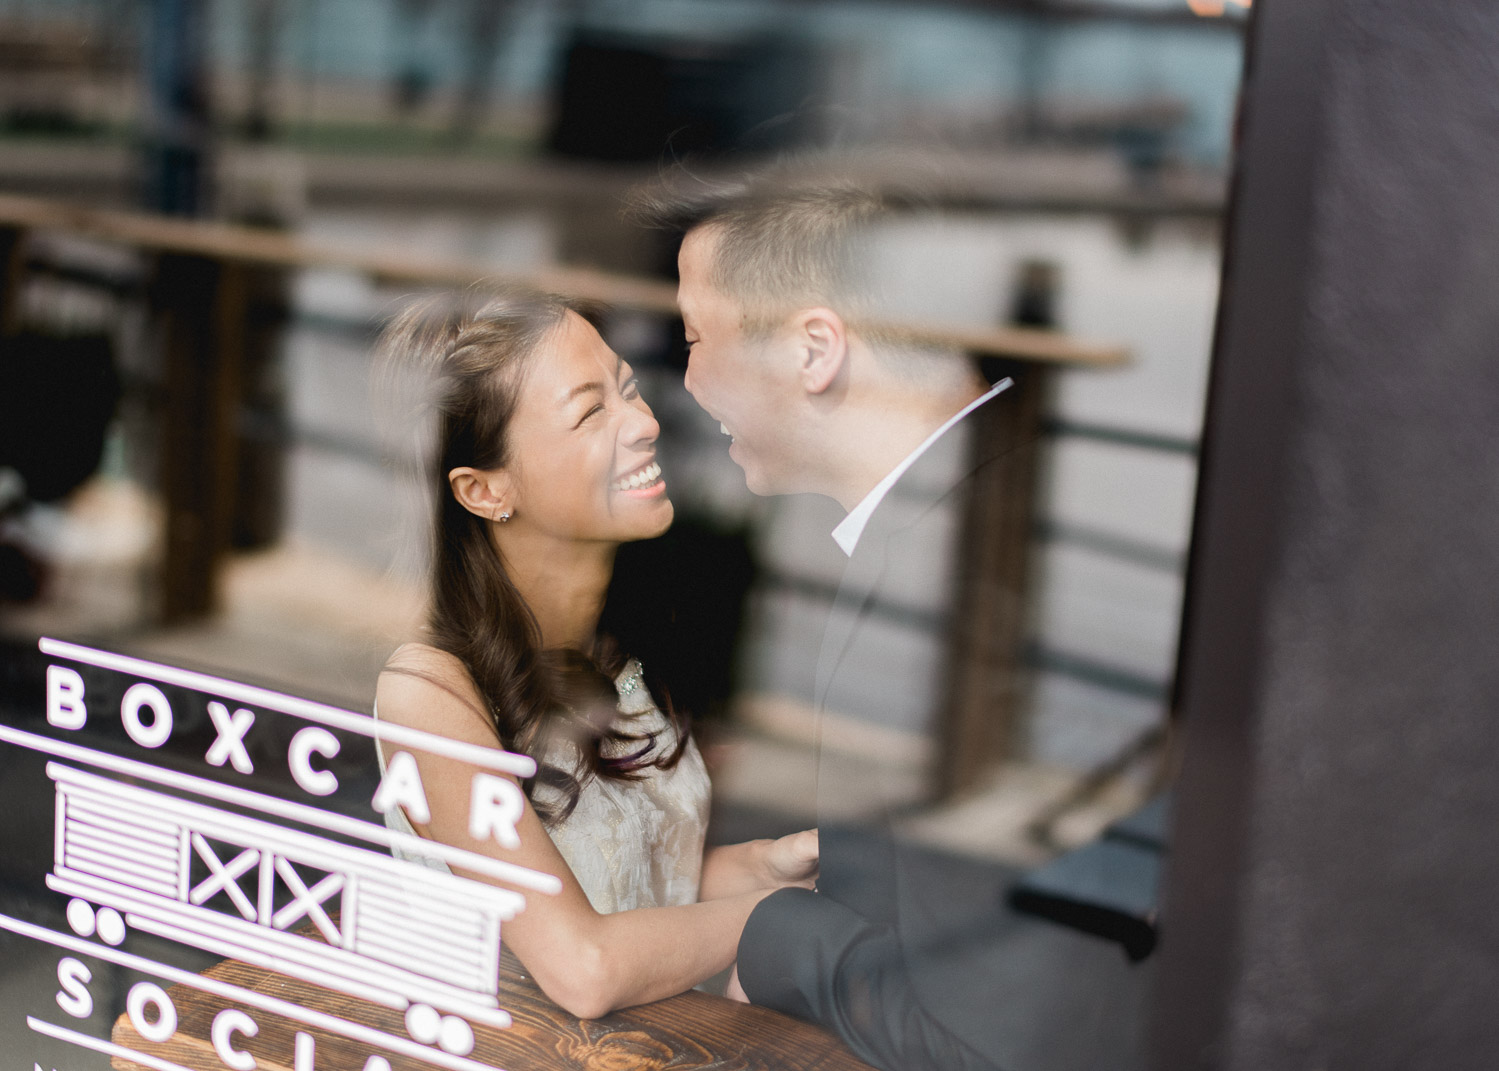 Cute photo of couple through window at Boxcar Social at Harbroufront Toronto